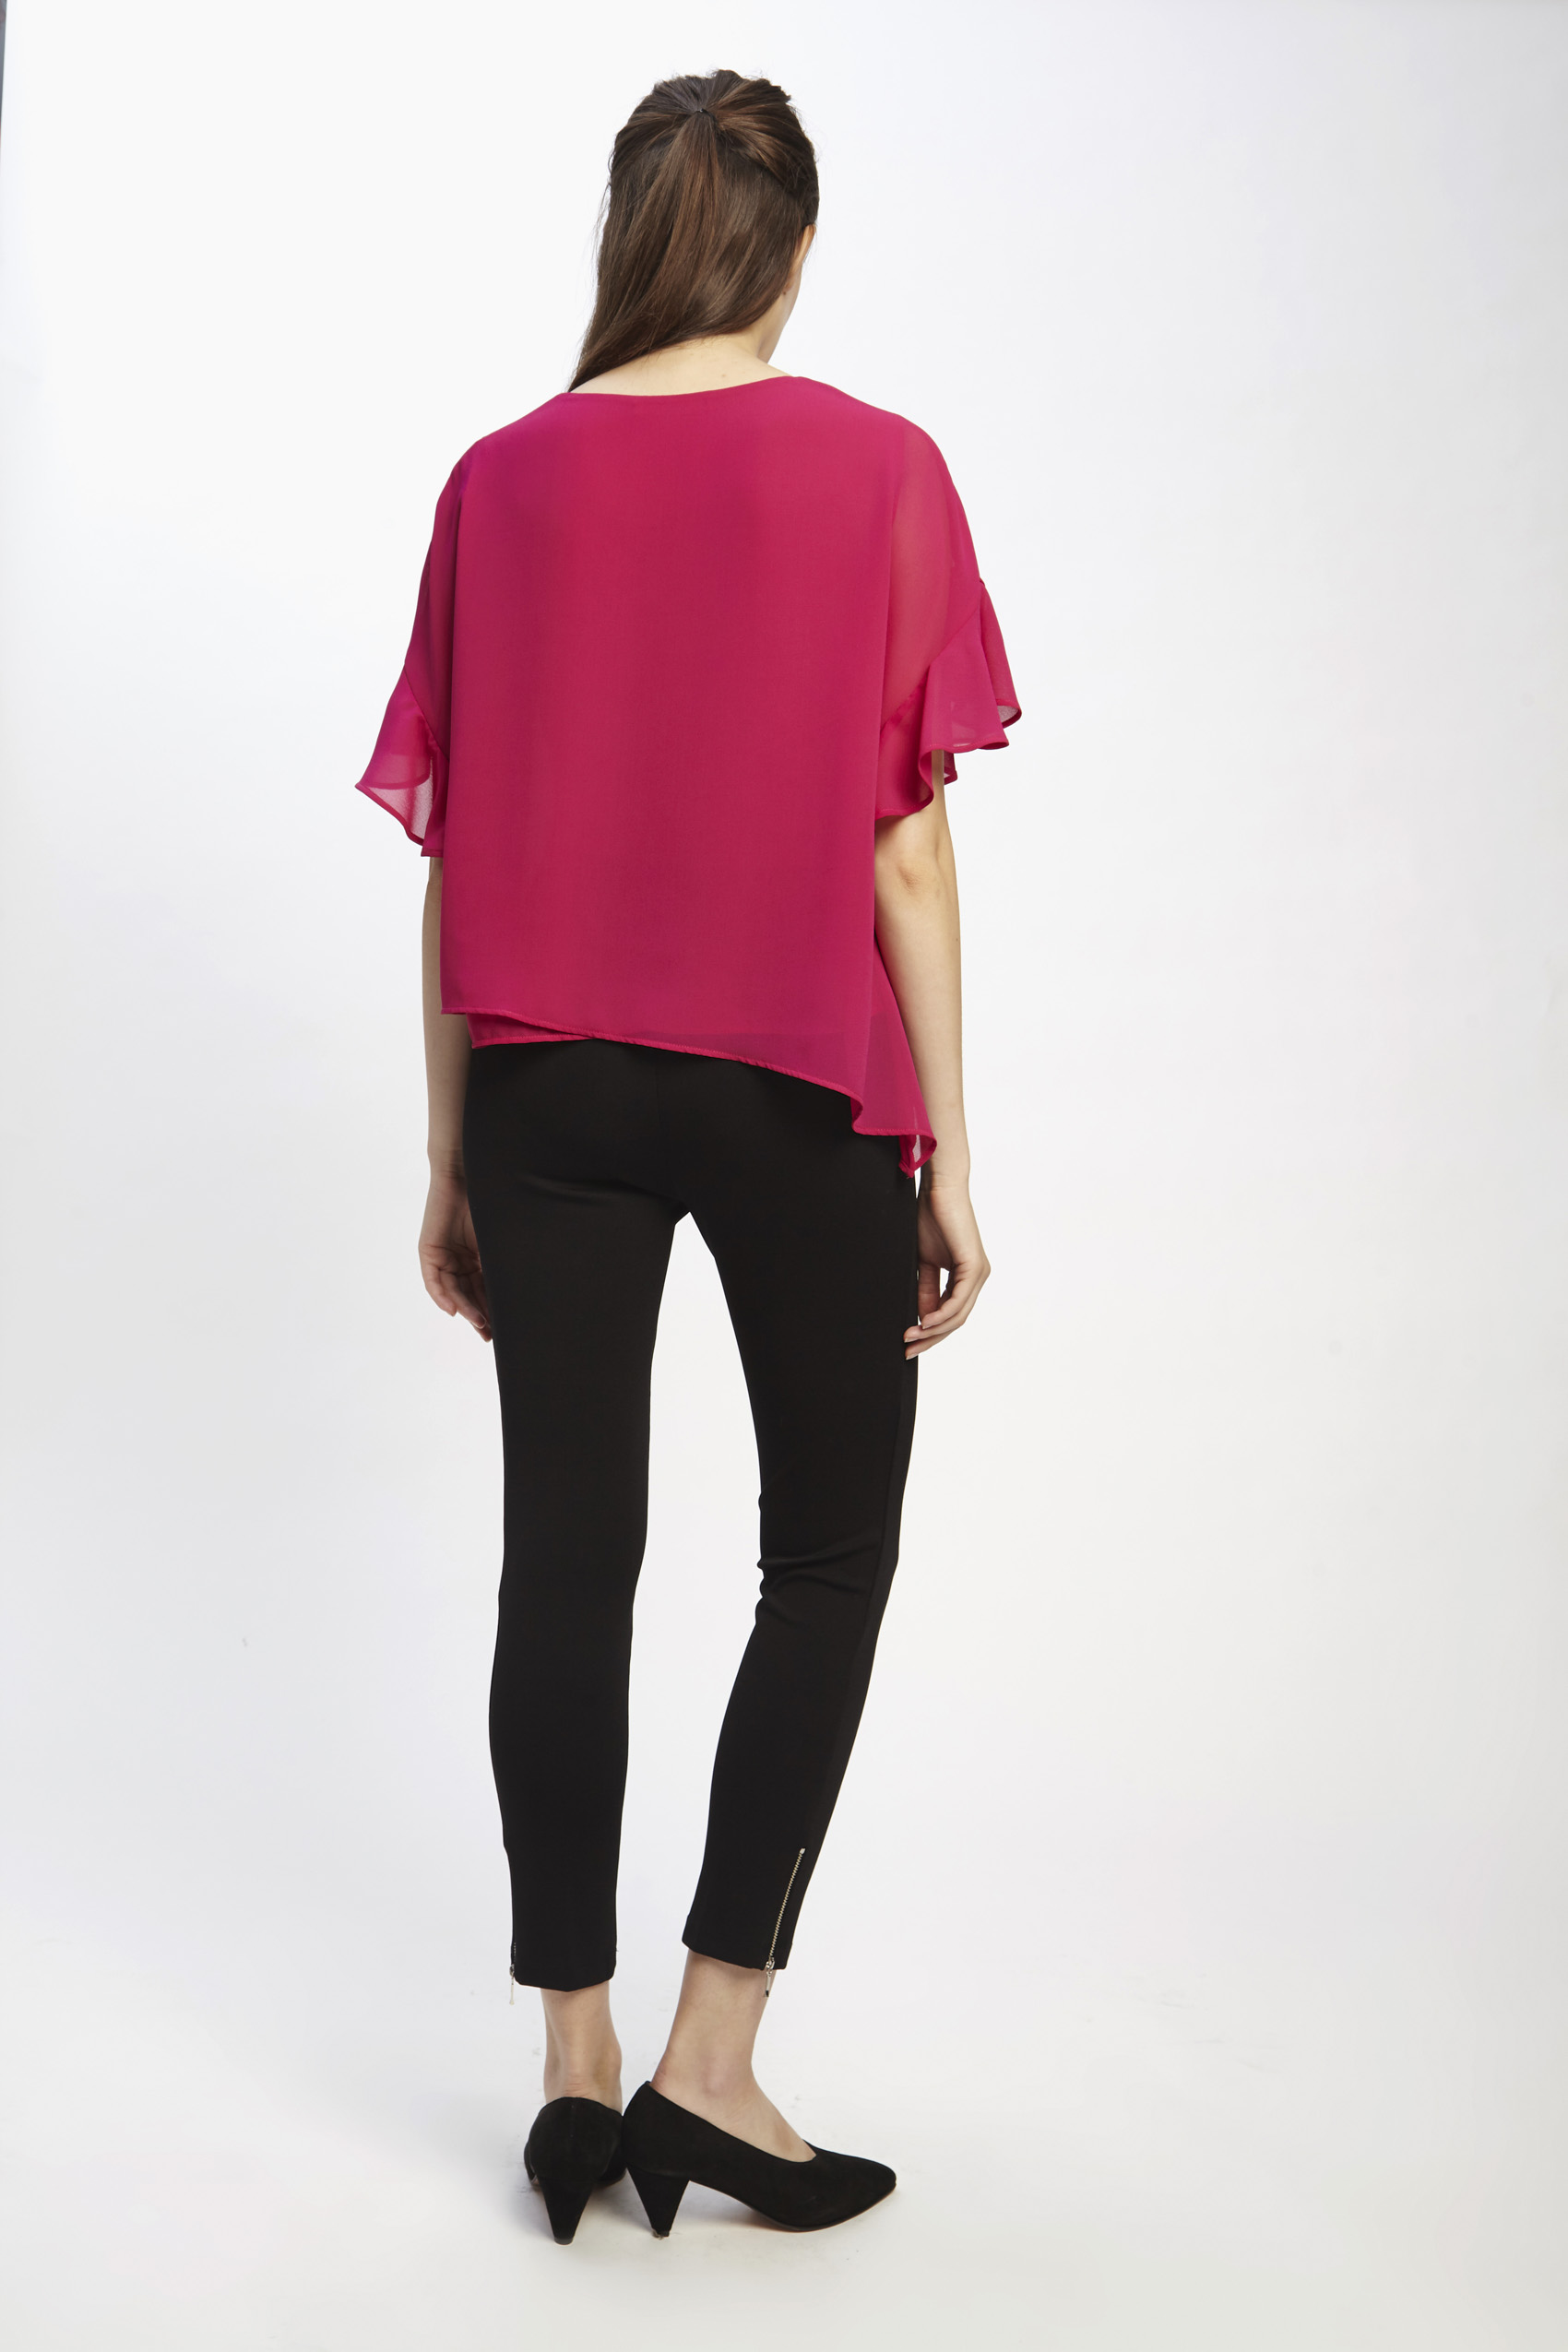 awada_blusa-candy_49-23-2019__picture-1888